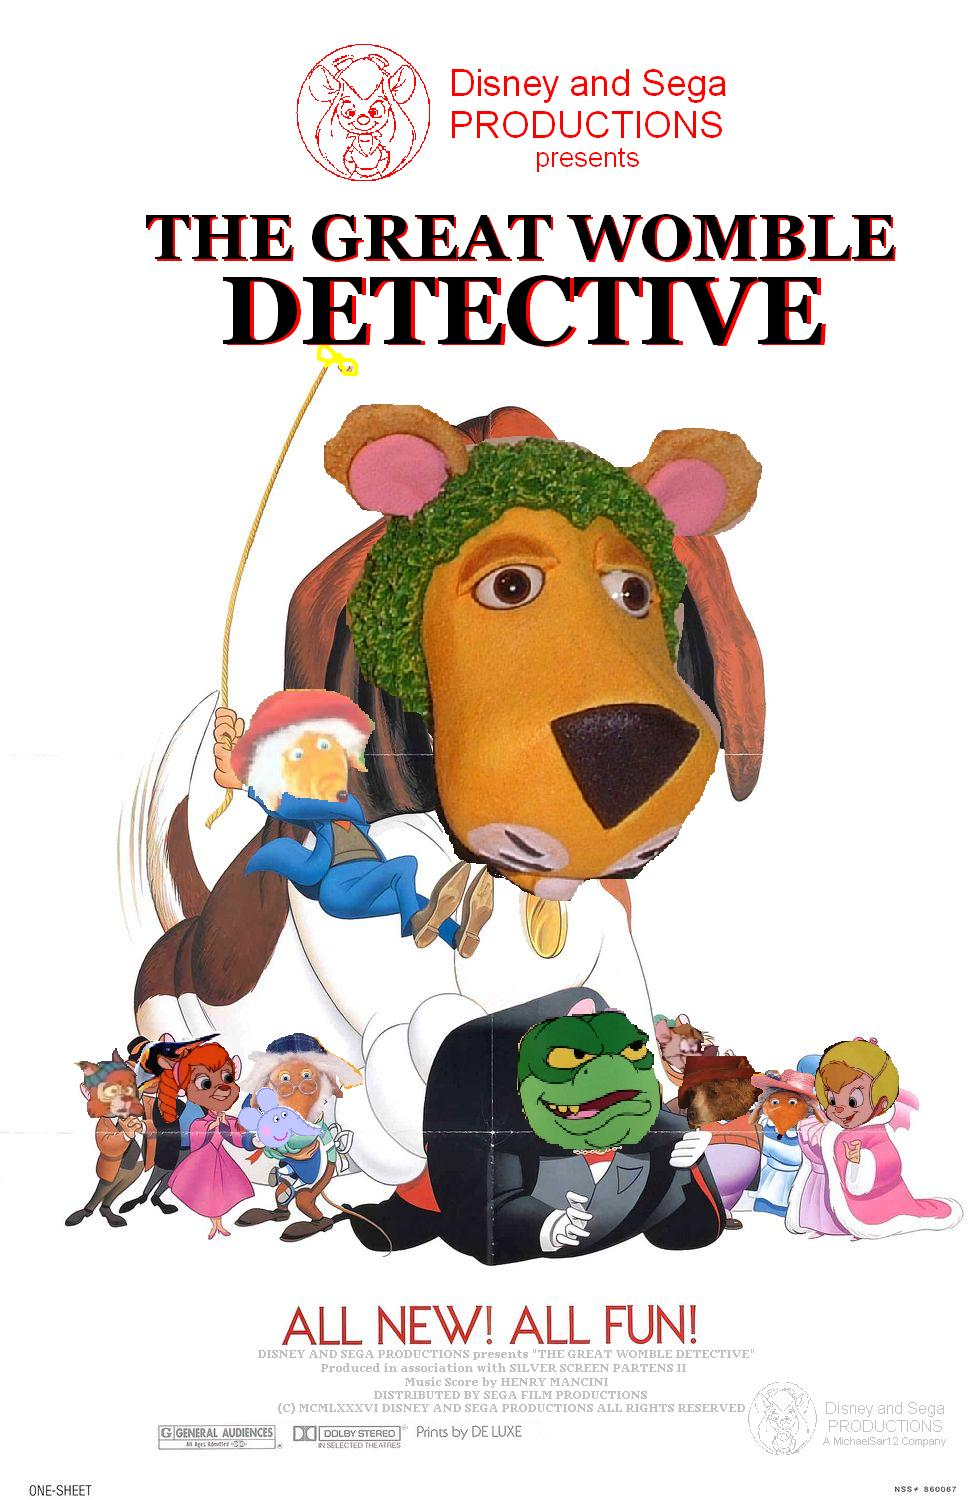 The Great Womble Detective